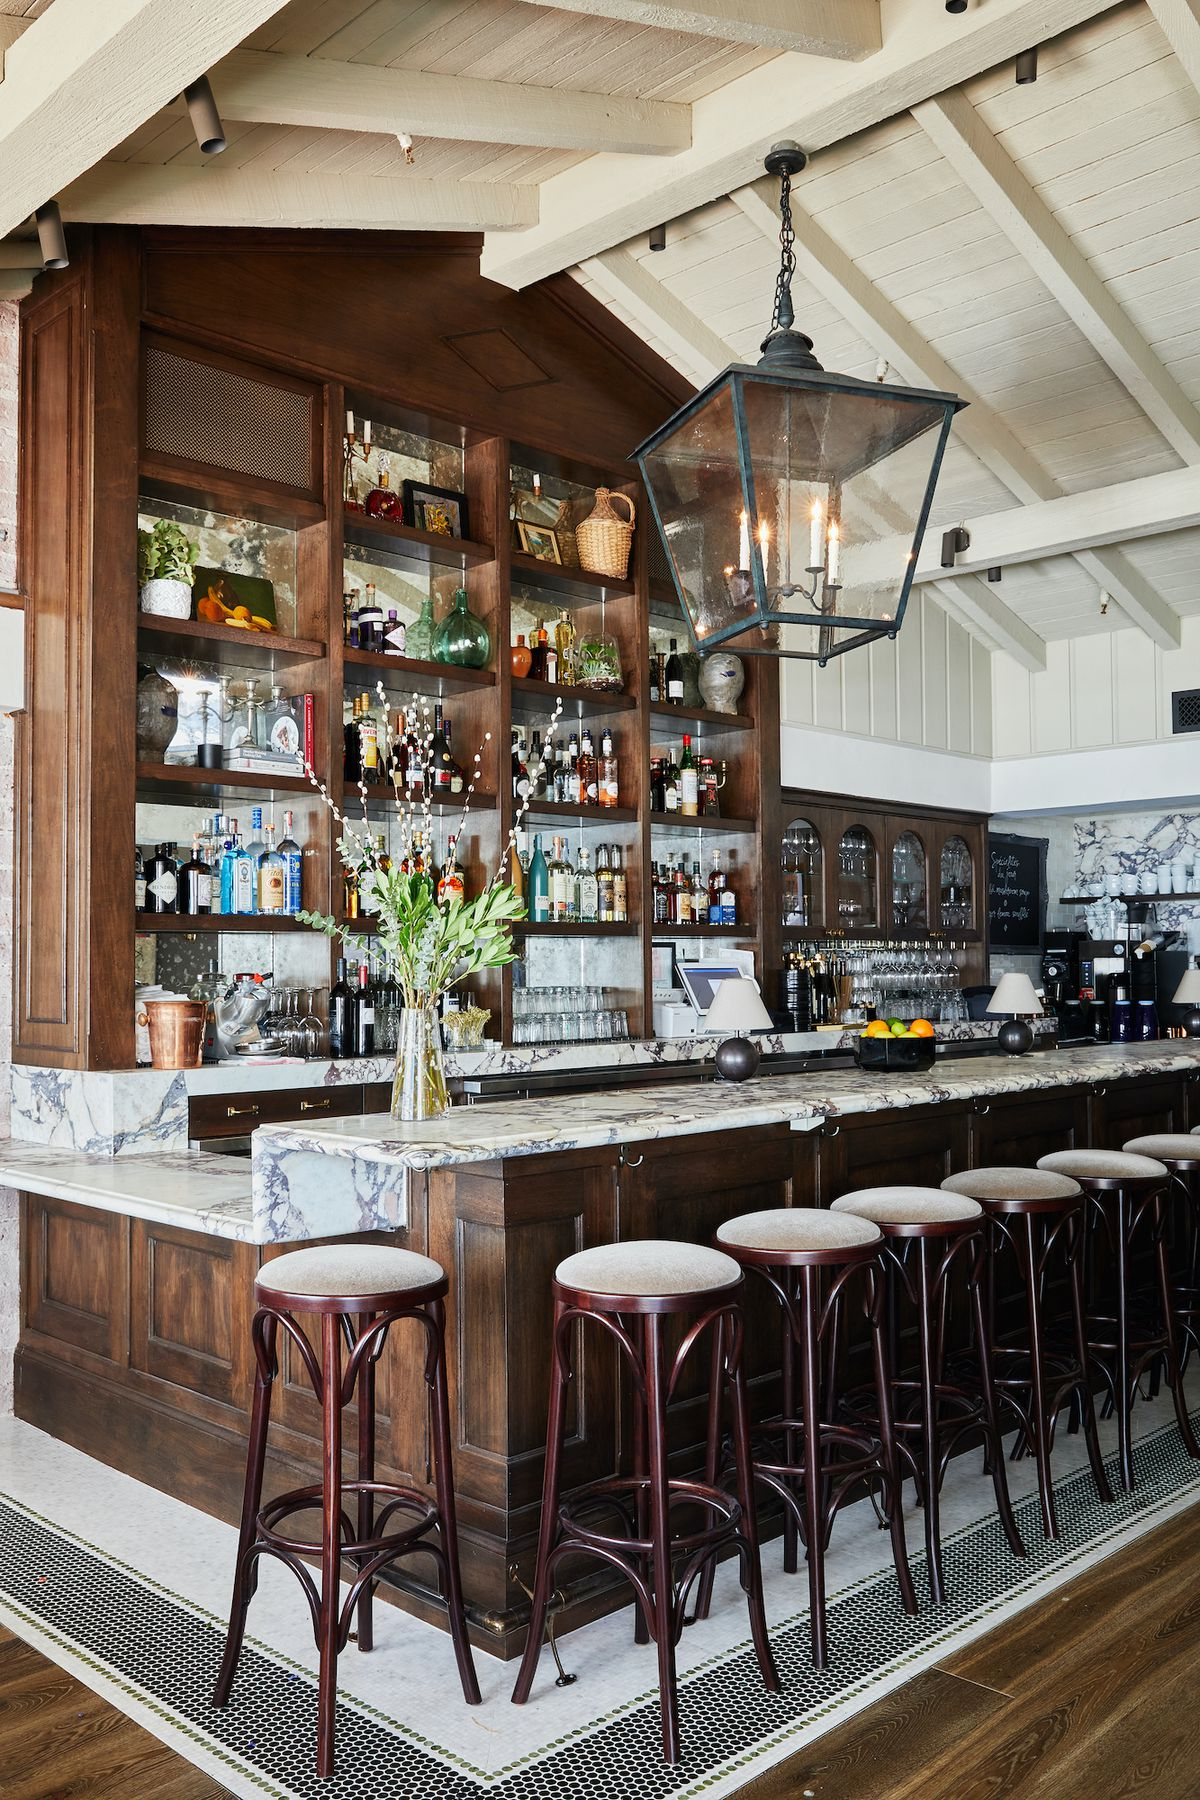 A tall ceiling and wooden bar area inside a French restaurant with light streaming in.